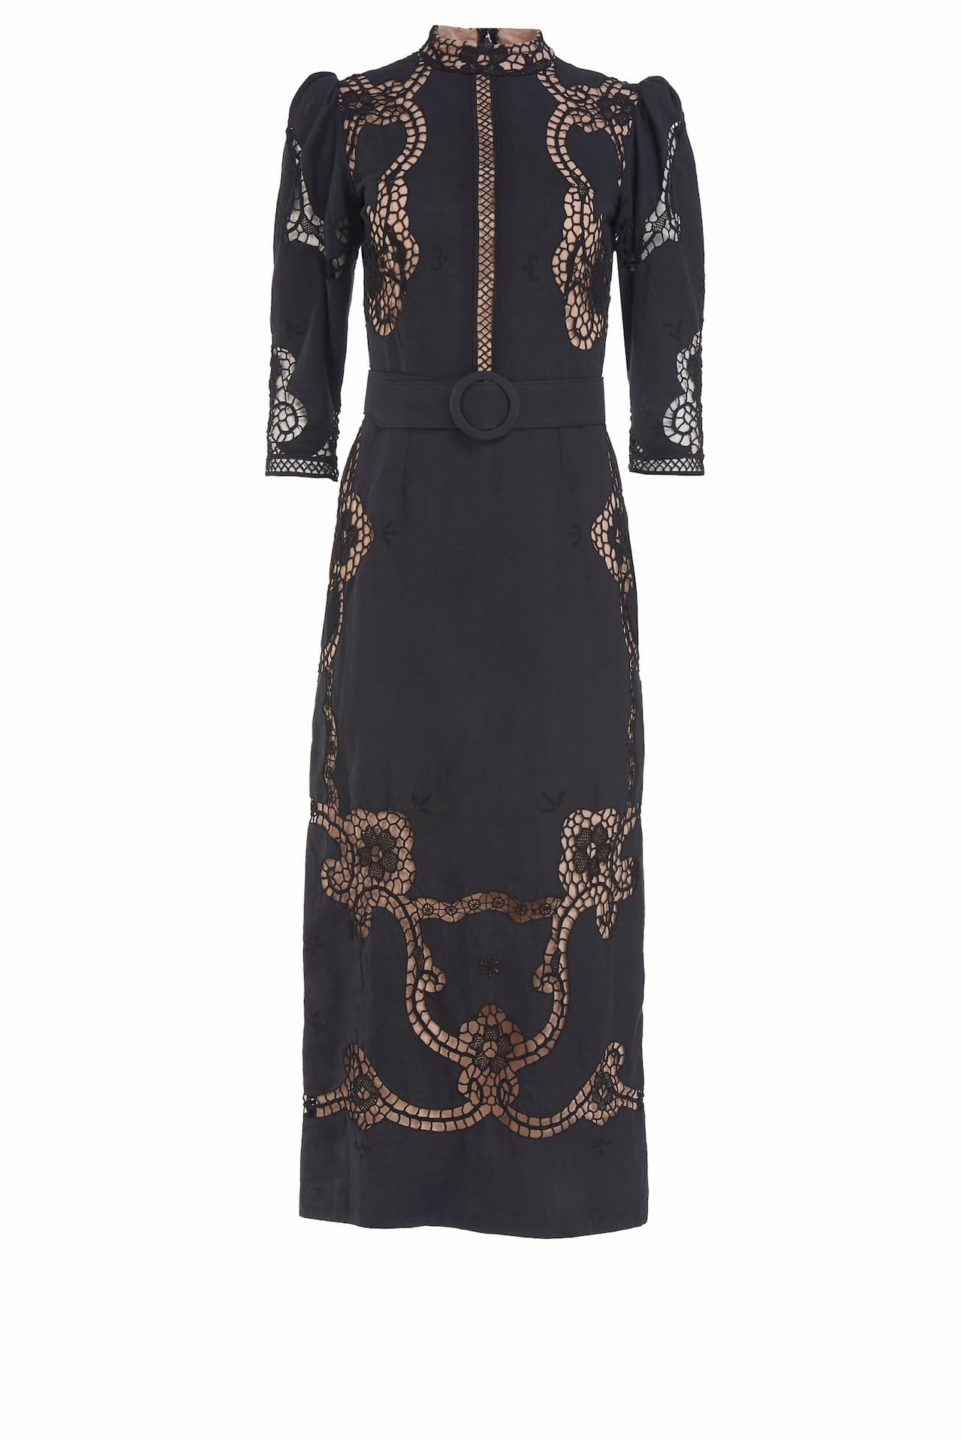 Evaine SS2122 Black Linen Cotton Blend Sheath Dress with Greek Reticella Lace and Mock-neckline